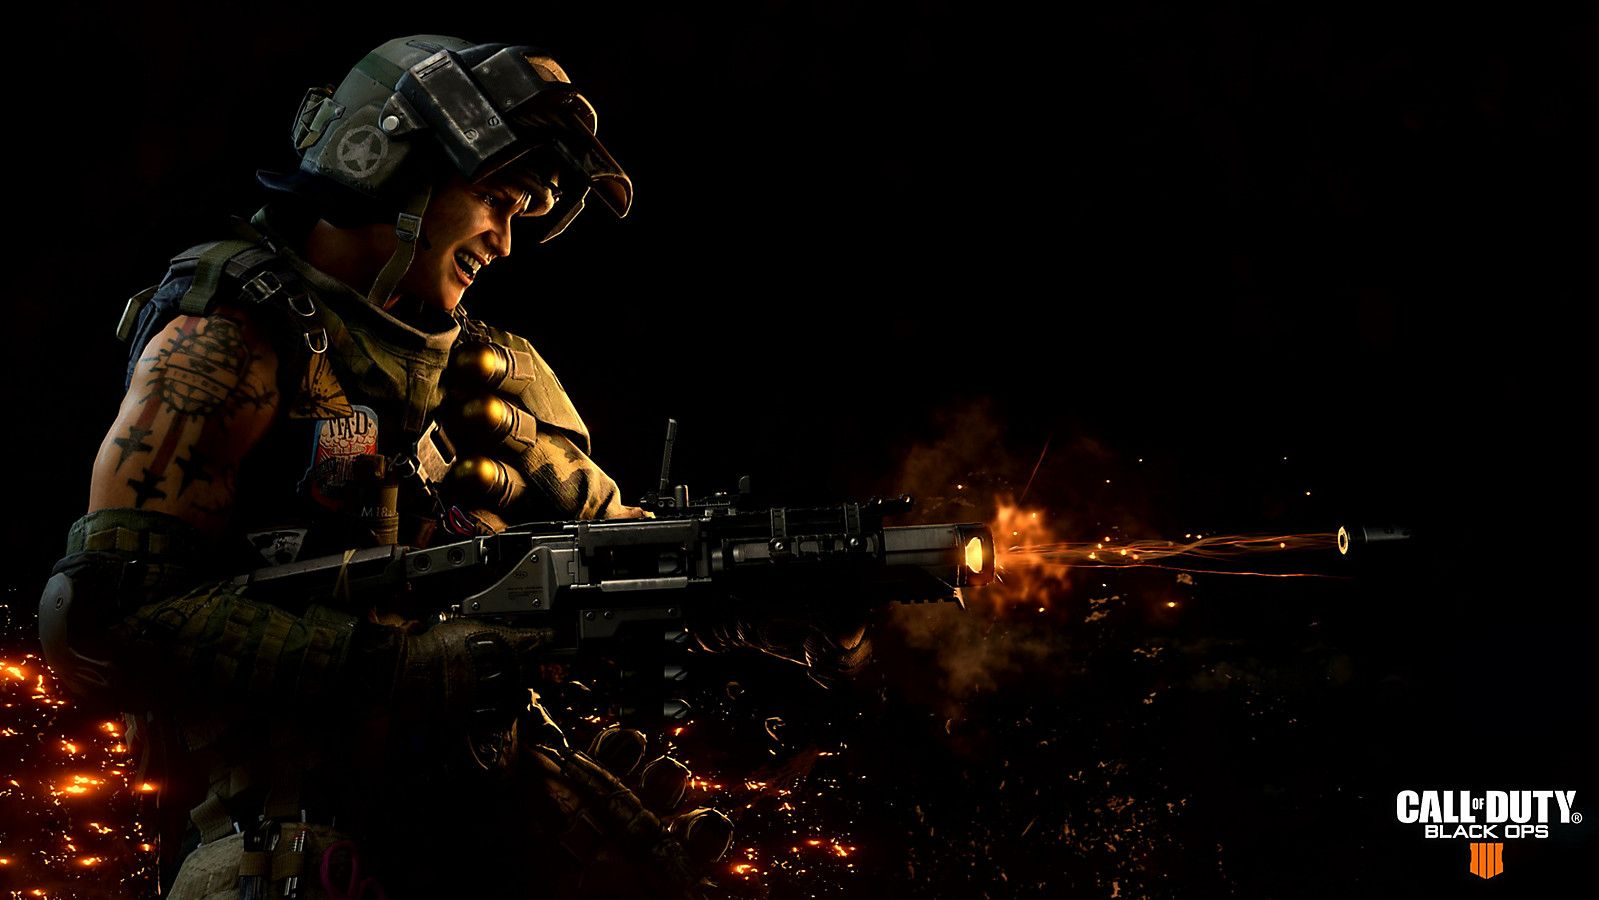 call-of-duty-black-ops-4-when-can-you-create-class